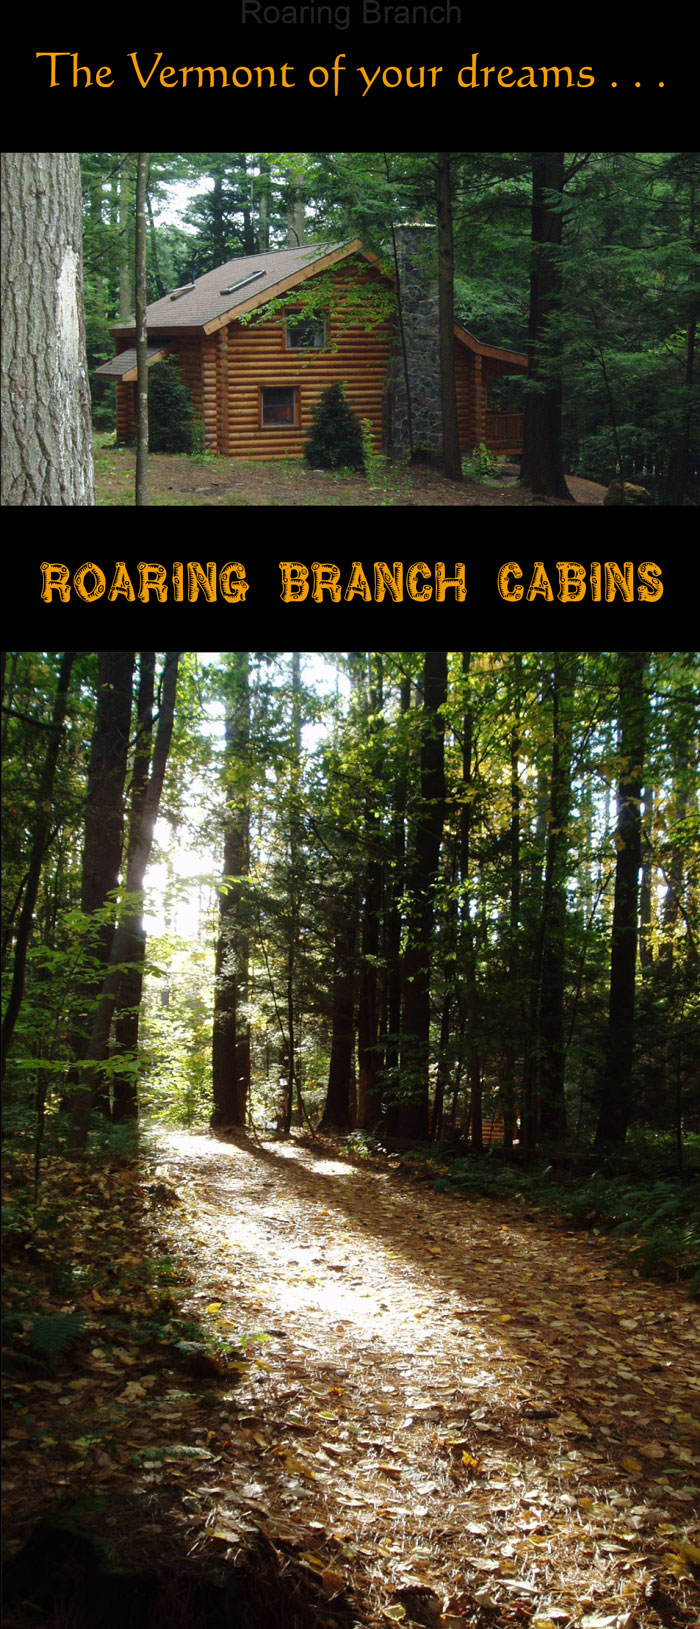 Roaring Branch Cabins